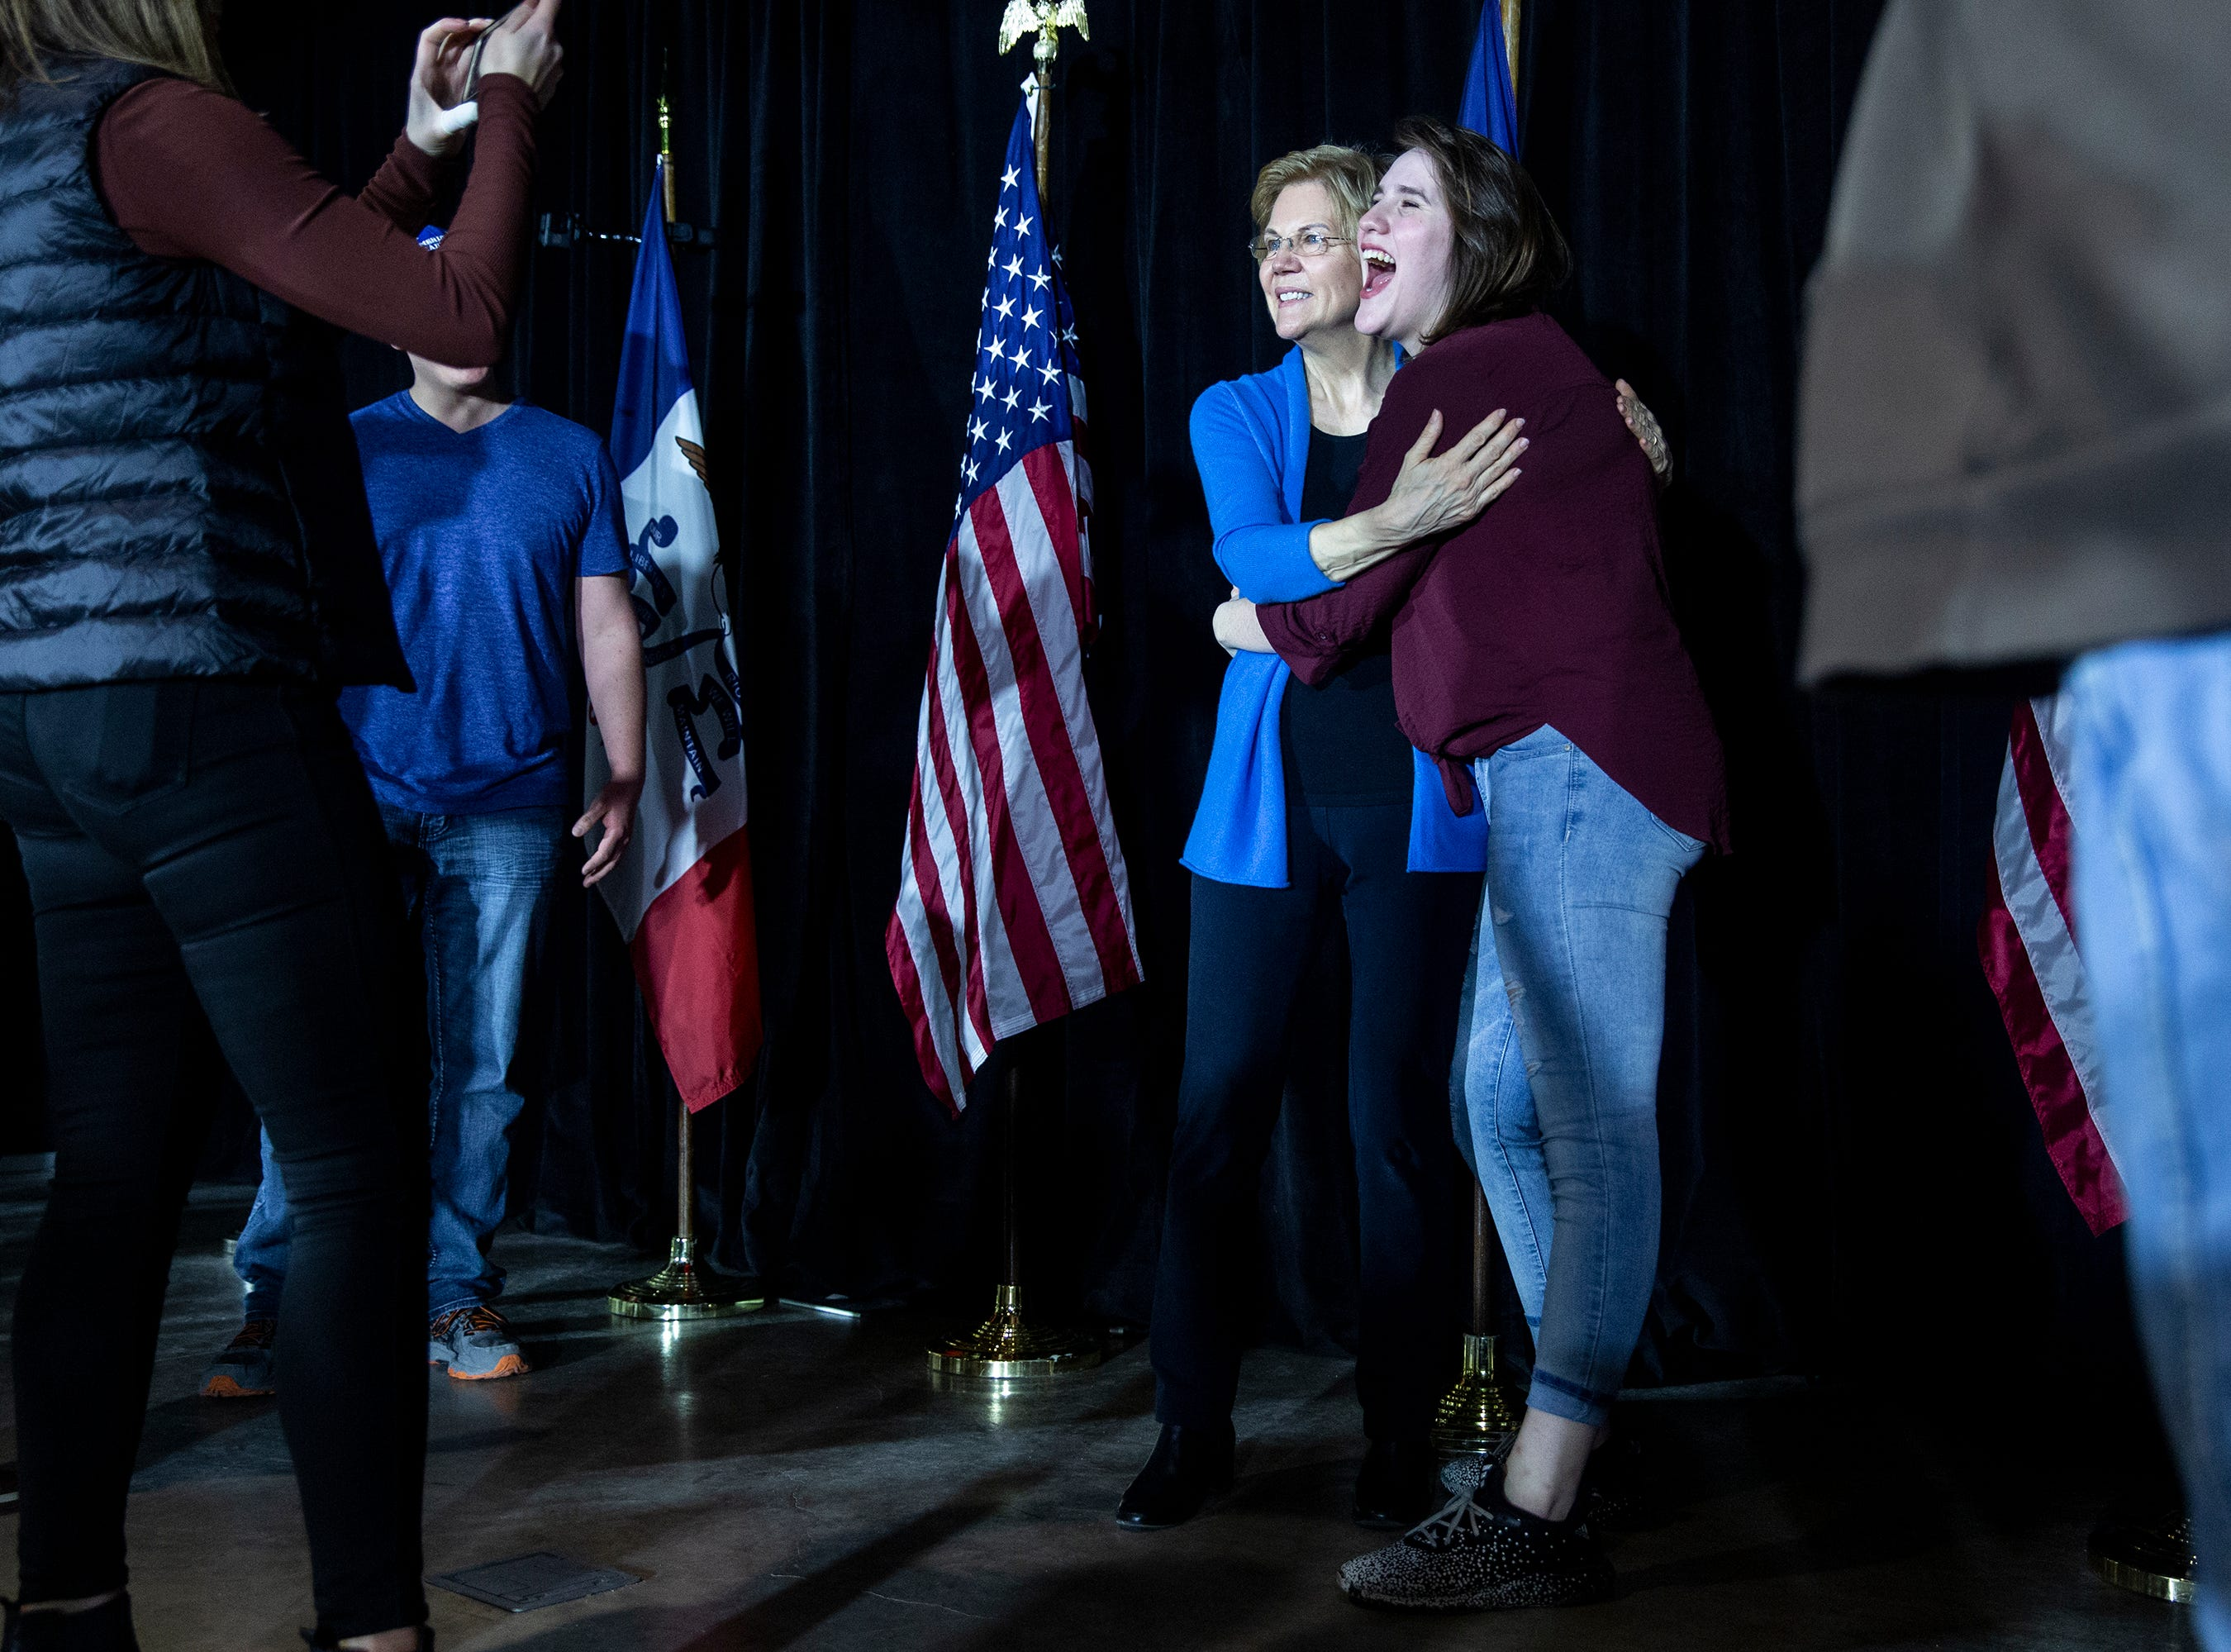 Sen. Elizabeth Warren, D-Mass., hugs a woman in the crowd after speaking in the Veterans Memorial Building in downtown Cedar Rapids on Sunday, Feb. 10, 2019. Warren stayed as long as it took to meet and take a photo with every person that wanted one.